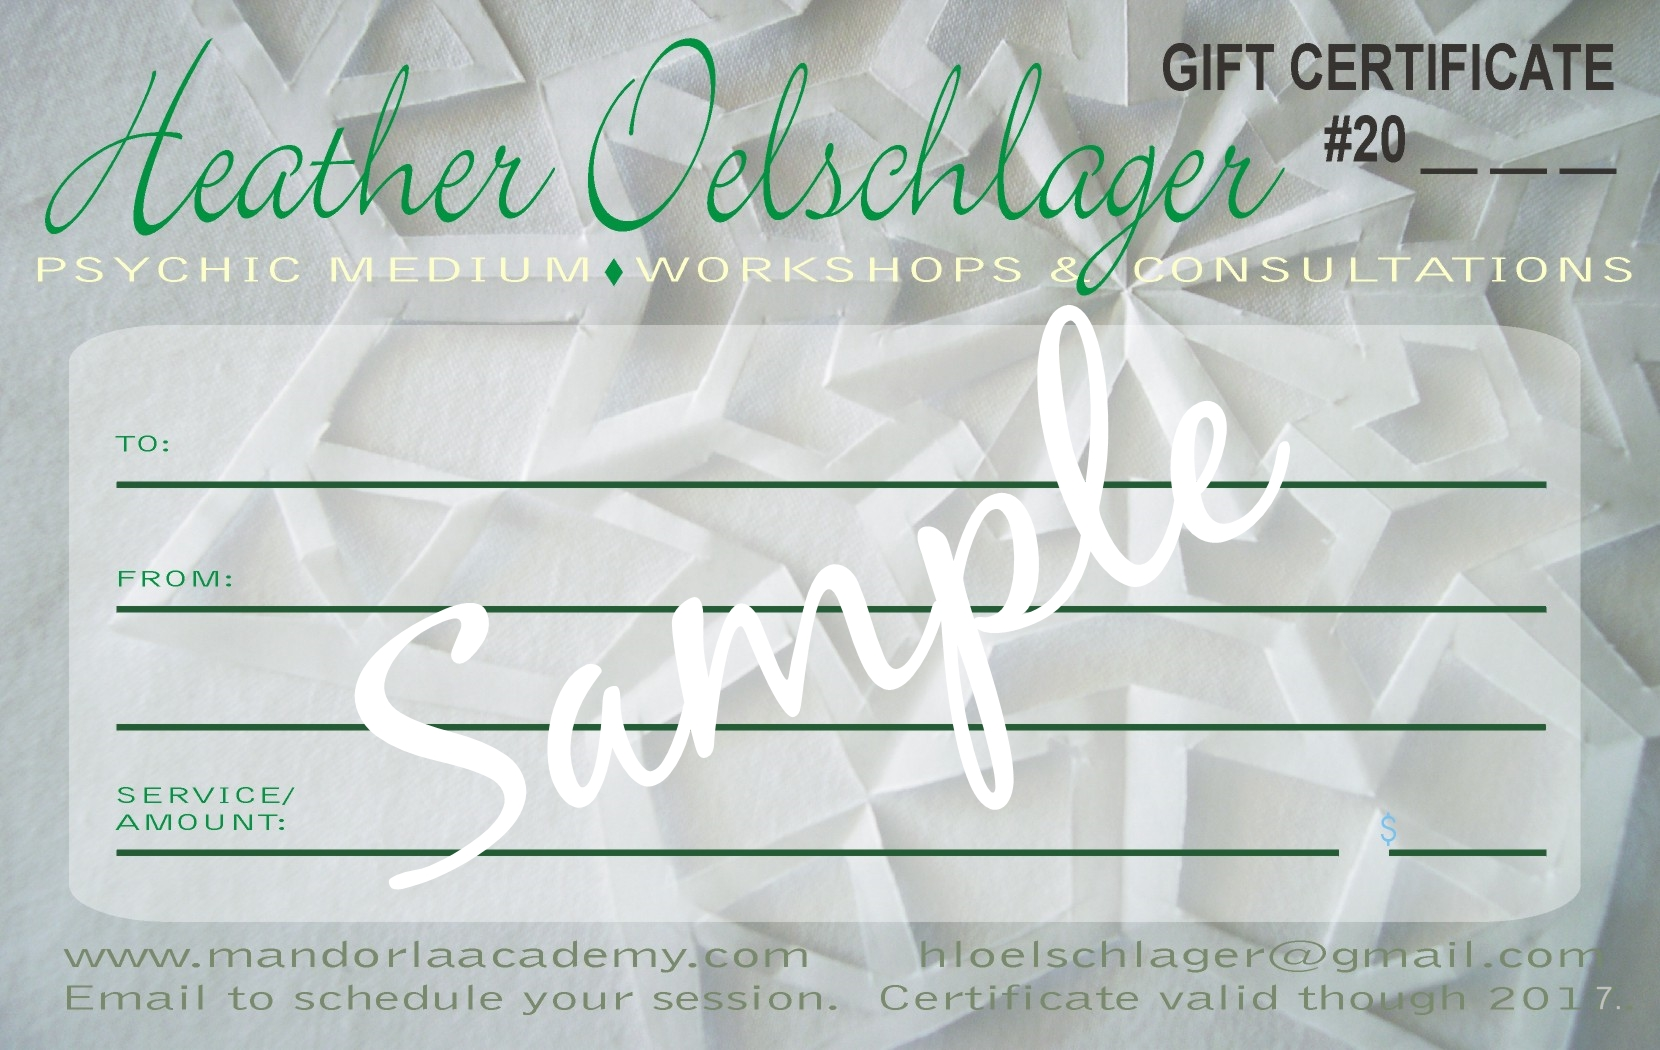 2017 gift certificate